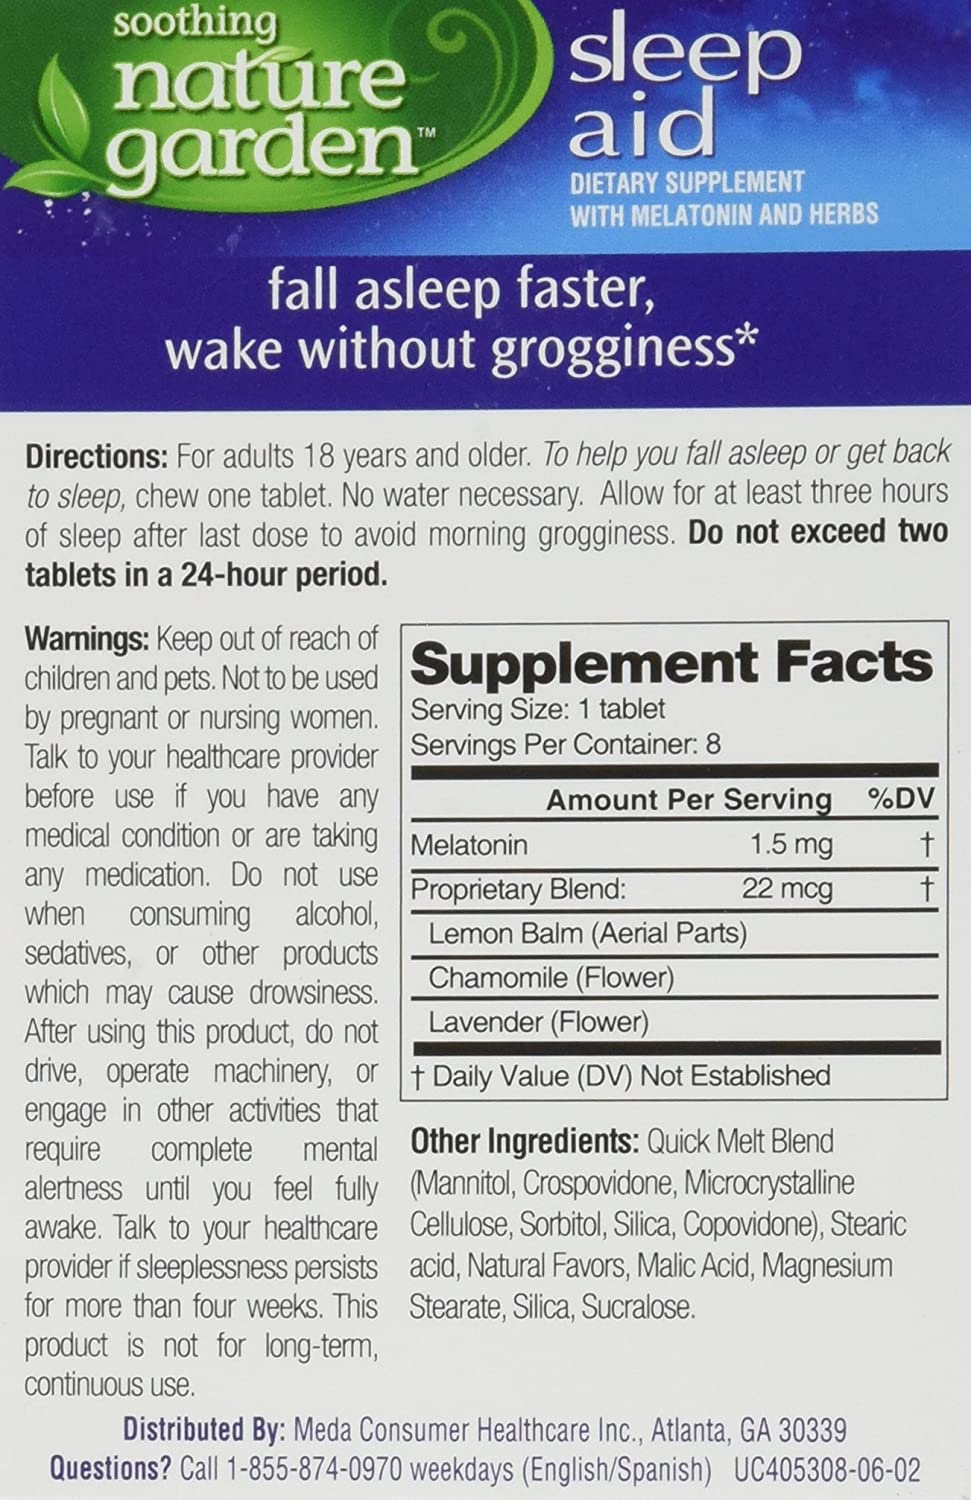 Amazon.com: Soothing Nature Garden Sleep Remedy 8ct Chewable Tablets (5 Boxes) *Compare to MidNite* (5 Boxes): Health & Personal Care